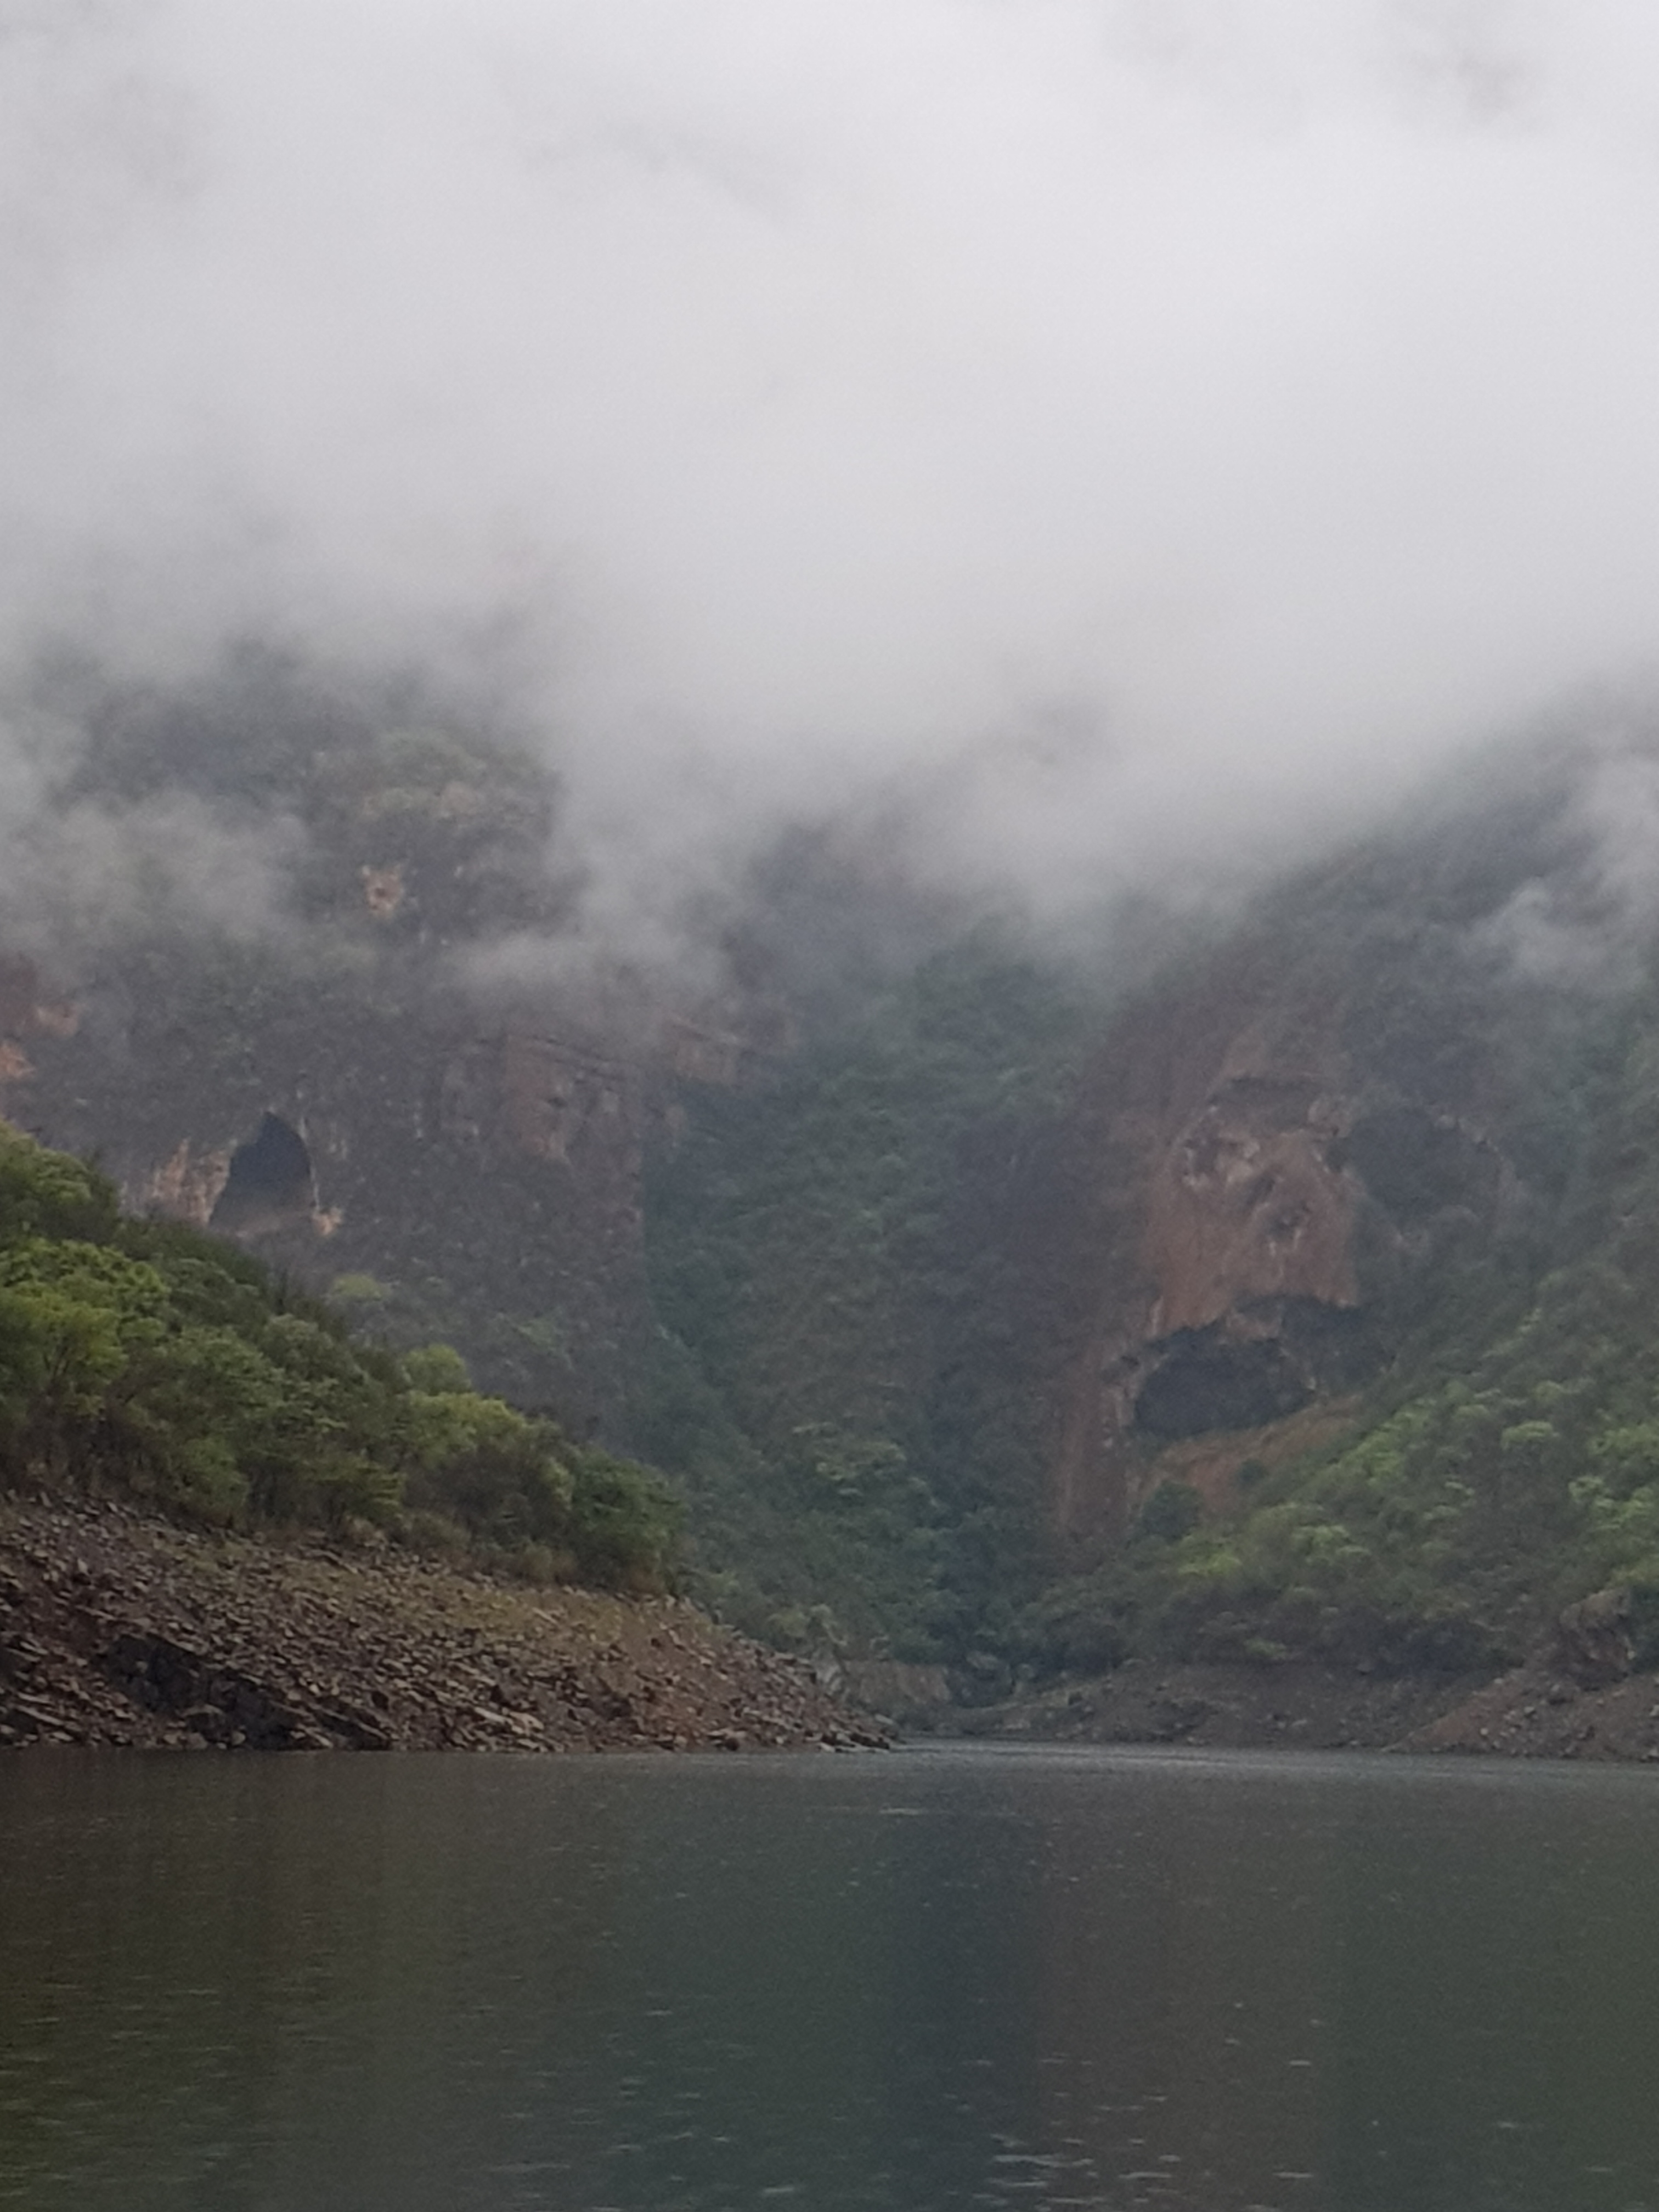 Blydepoort dam with weeping natural mask